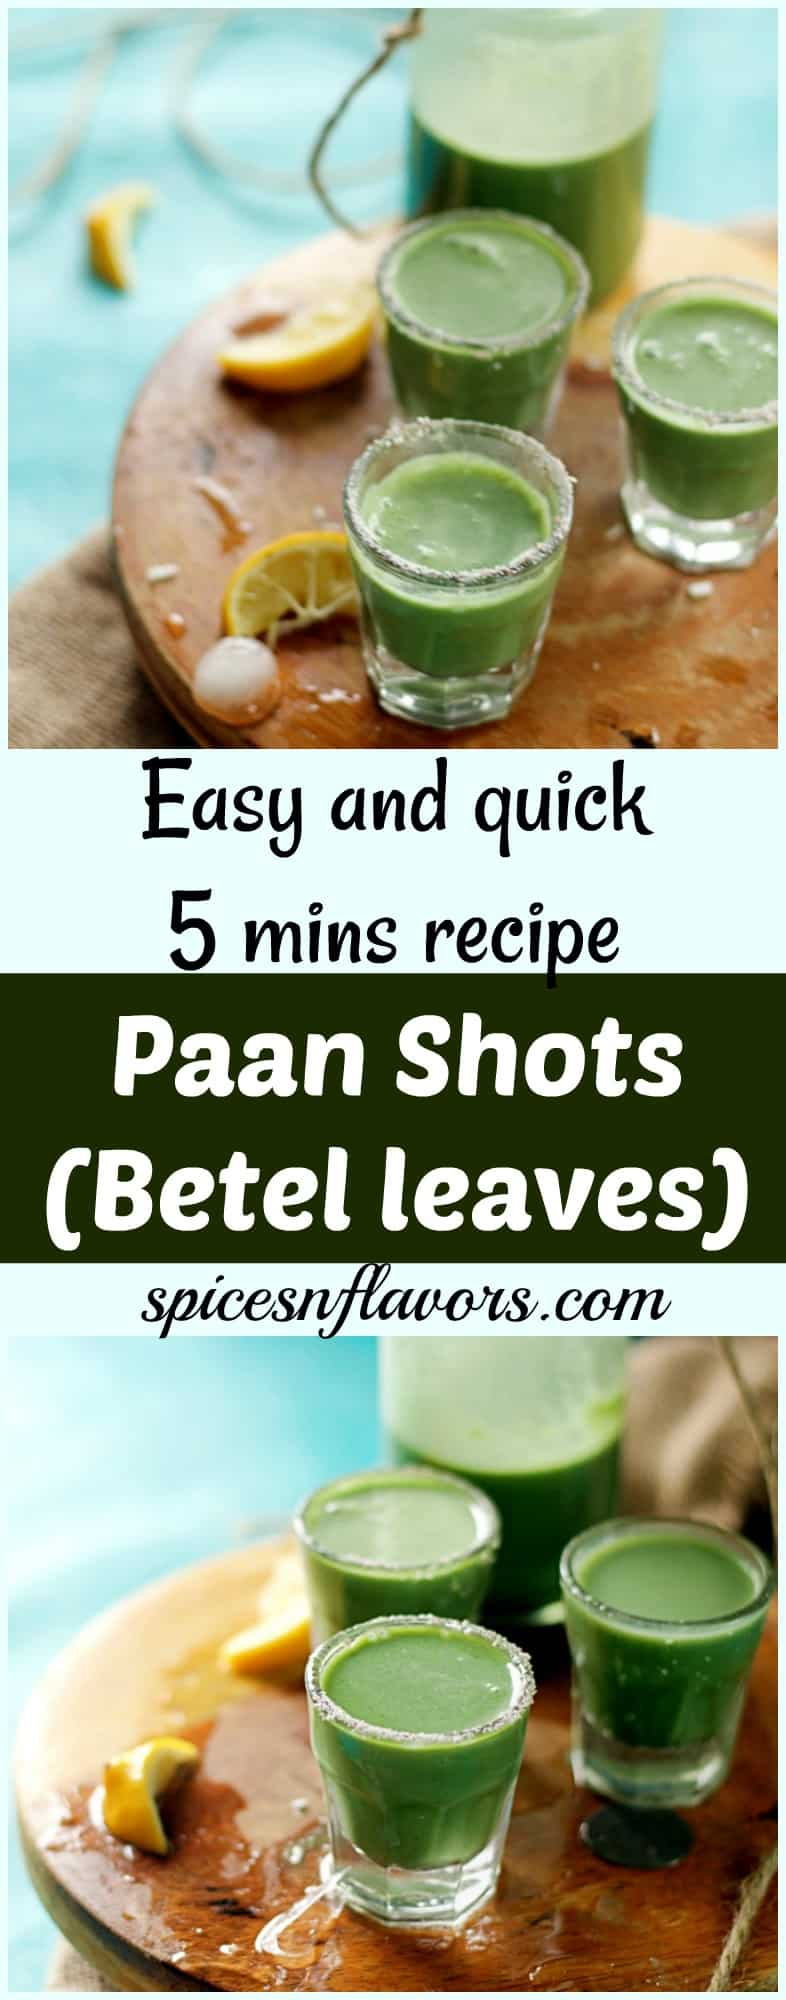 paan shots paan desserts refreshing paan drink betel leaves drink paan masala gulkand paan indian paan meetha paan